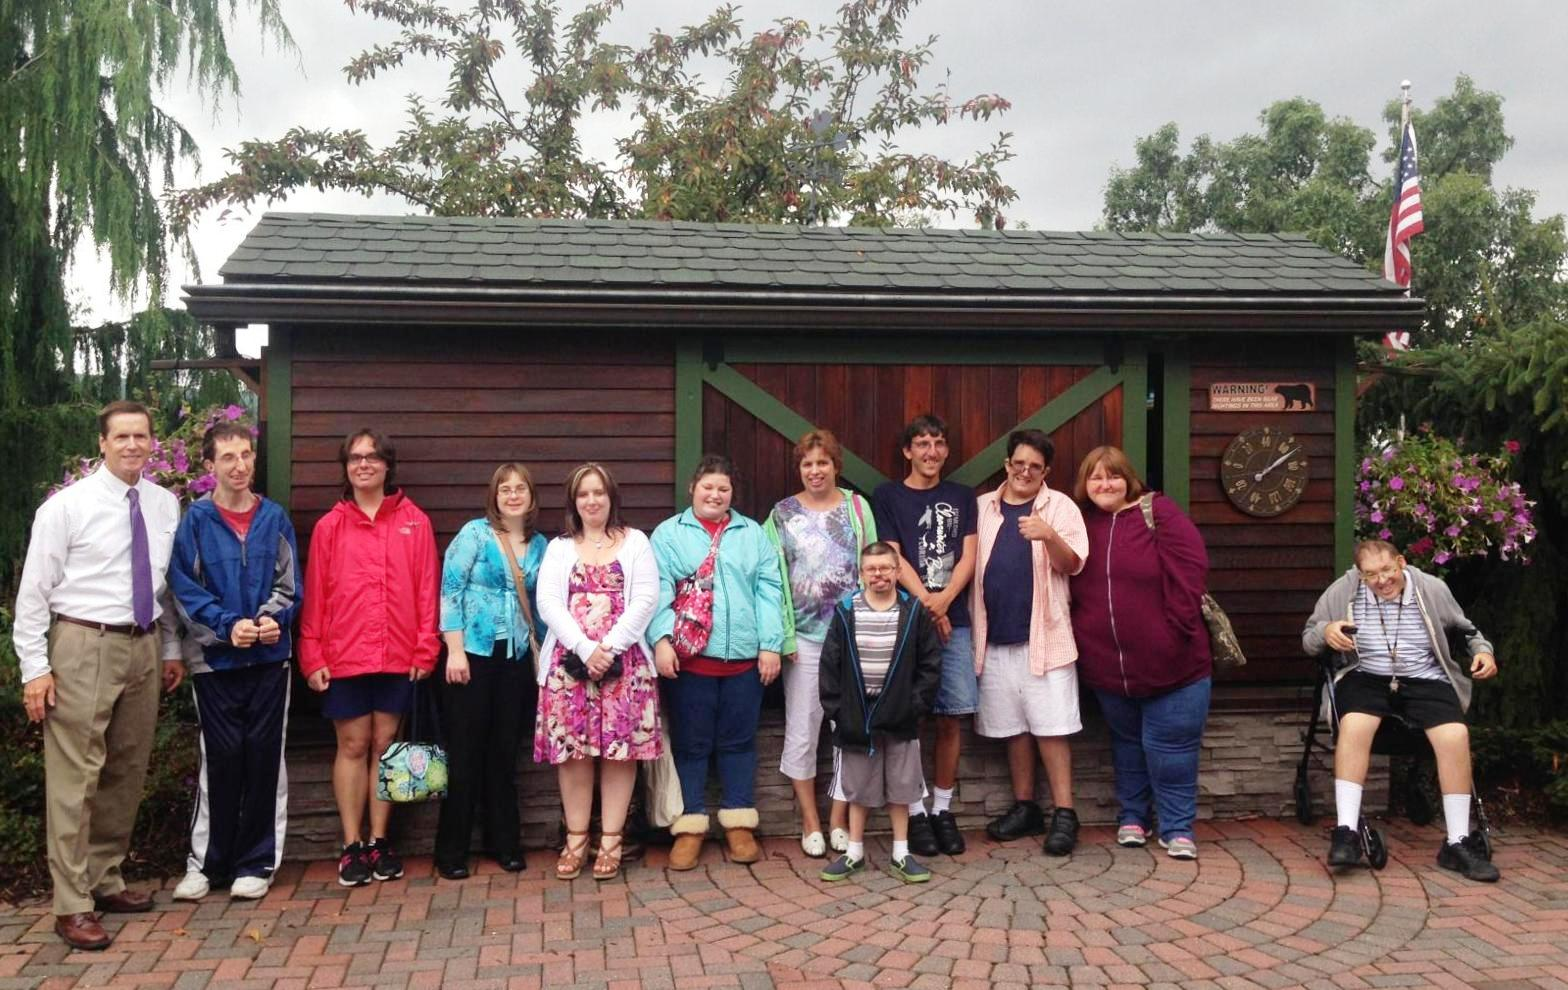 TAMAQUA'S ACCESS SERVICES L I F E  GROUP VISITS WNEP 16 NEWS STATION